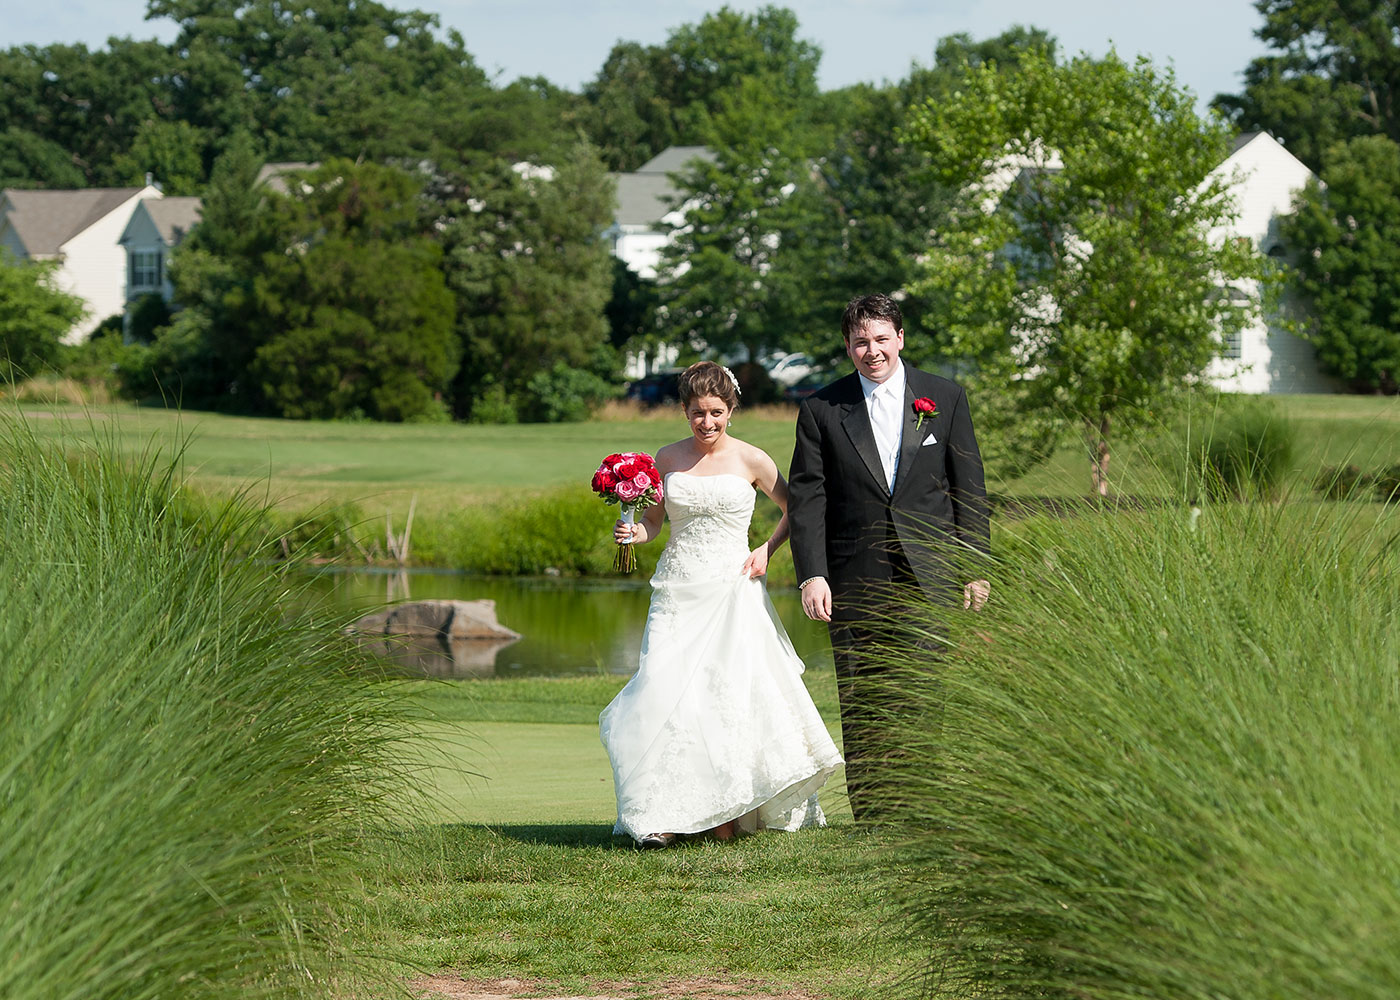 weddings-kelly-joe-gallery24